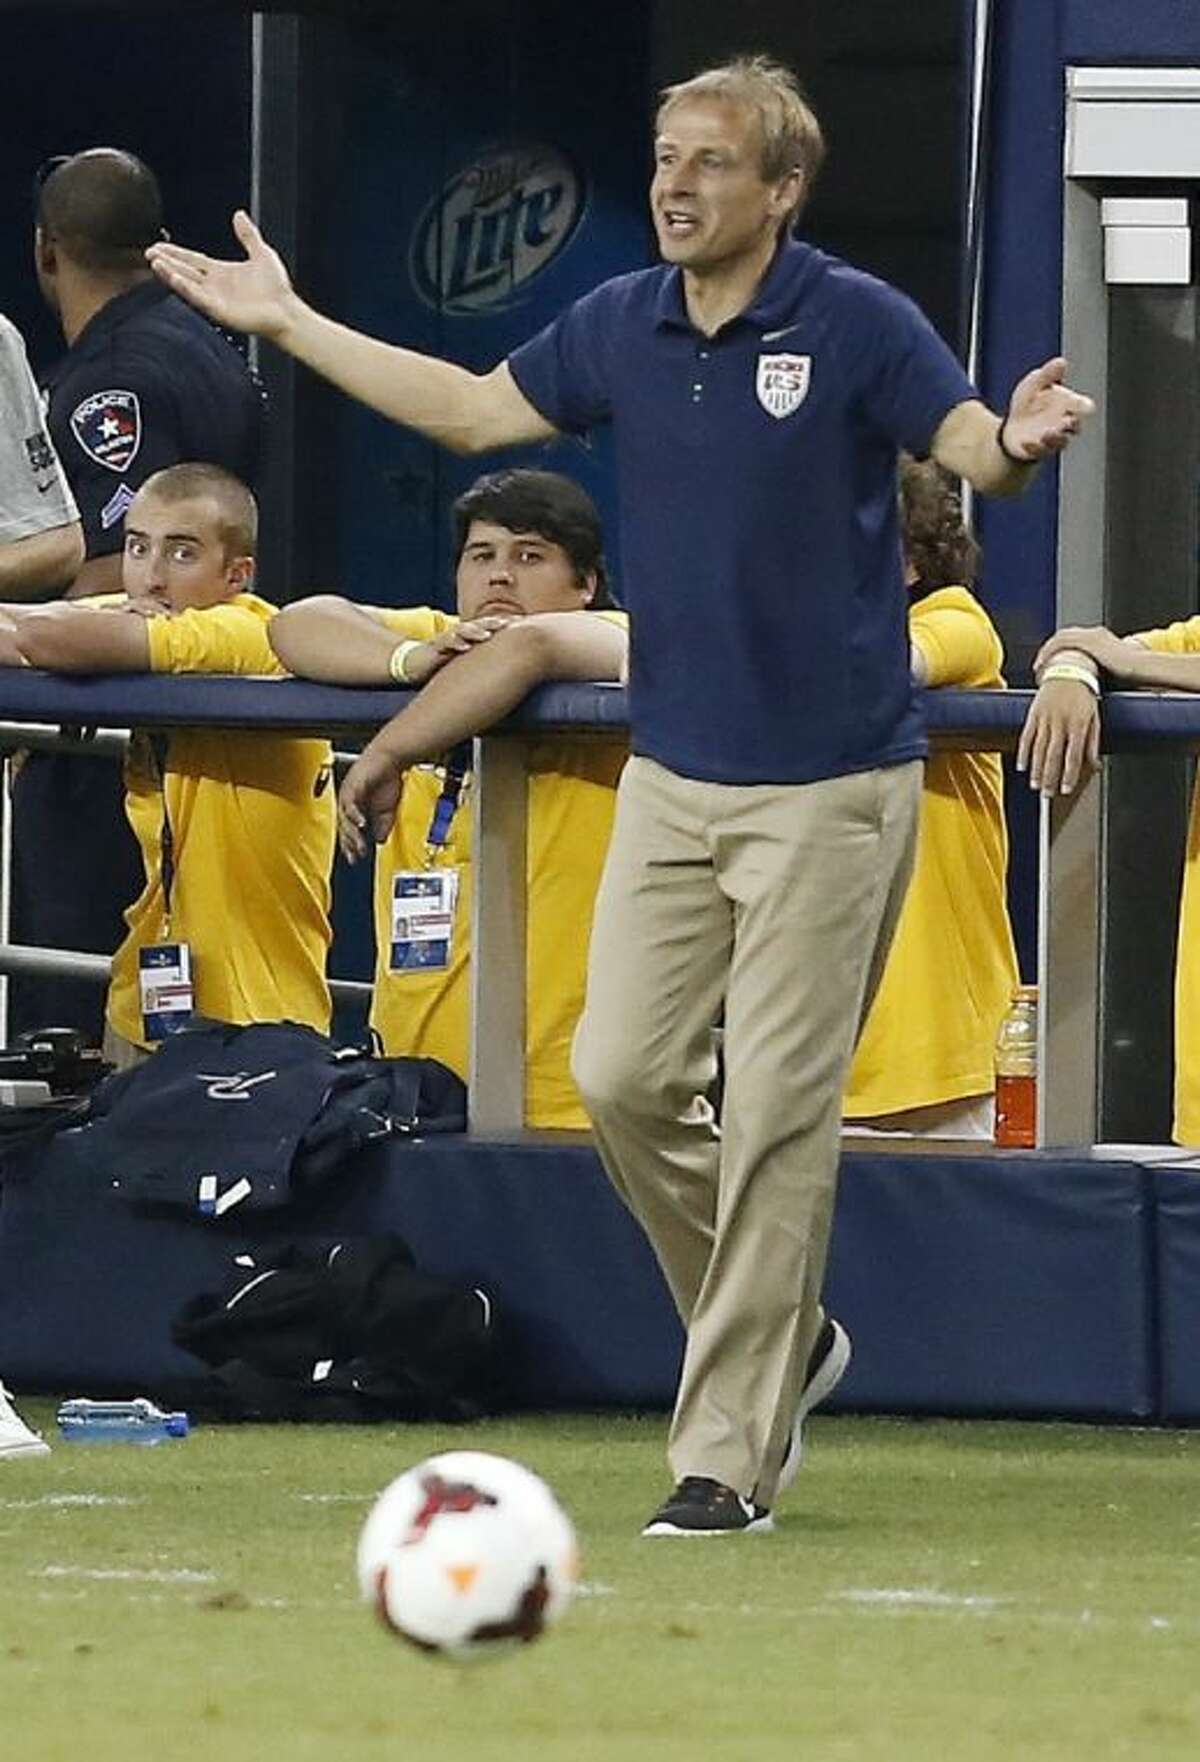 United States manager Jurgen Klinsmann gestures on the sideline during the second half against Honduras in the semifinals of the CONCACAF Gold Cup on Wednesday at Cowboys Stadium in Arlington. The USA won 3-1 to advance to the final against Panama on Sunday in Chicago.